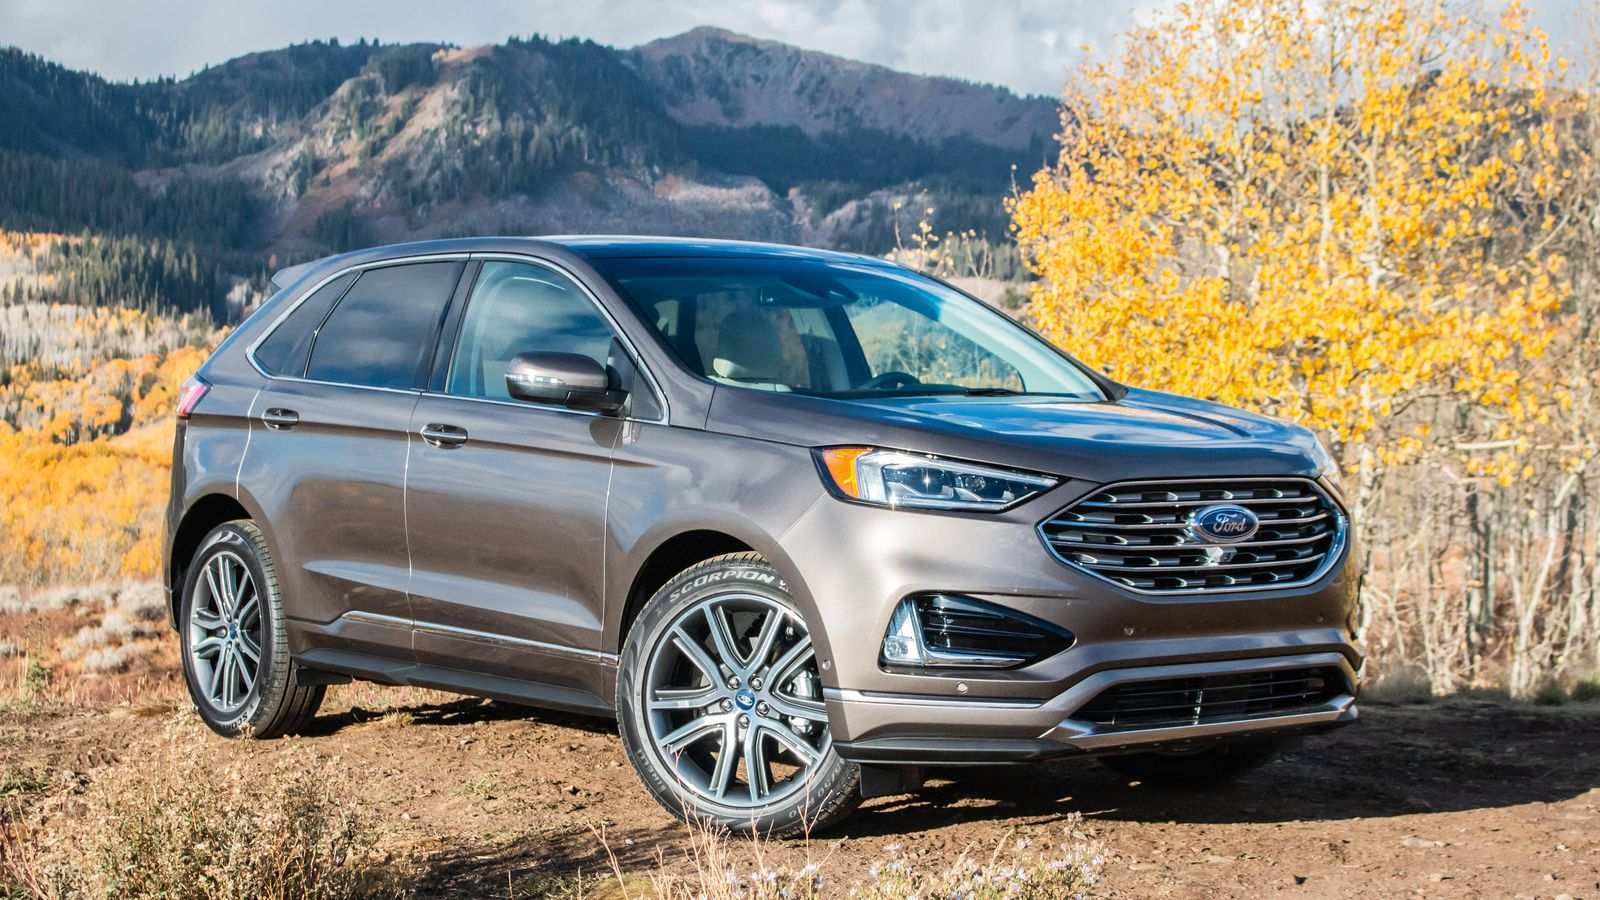 39 Great 2019 Ford Edge Prices with 2019 Ford Edge